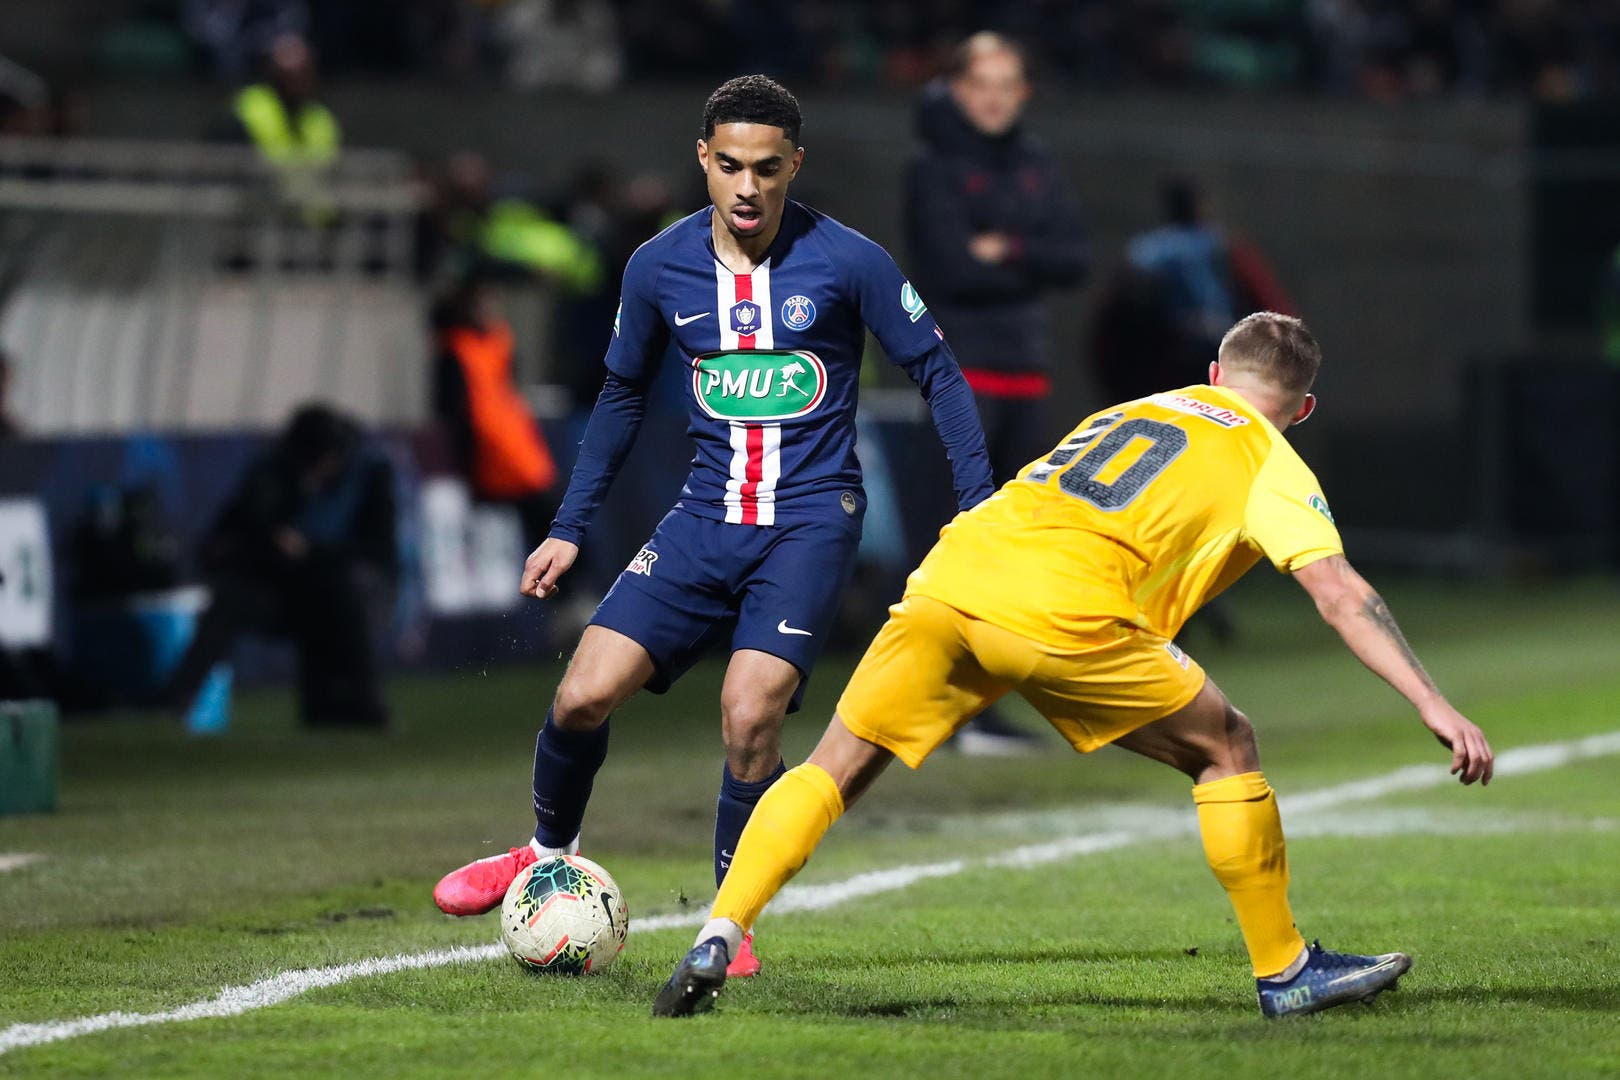 https://www.foot01.com/img/images/1920x1080/2020/Jan/29/psg-dagba-victime-du-desastreux-terrain-de-pau-icon_19-20-pau-vs-psg-075,276851.jpg